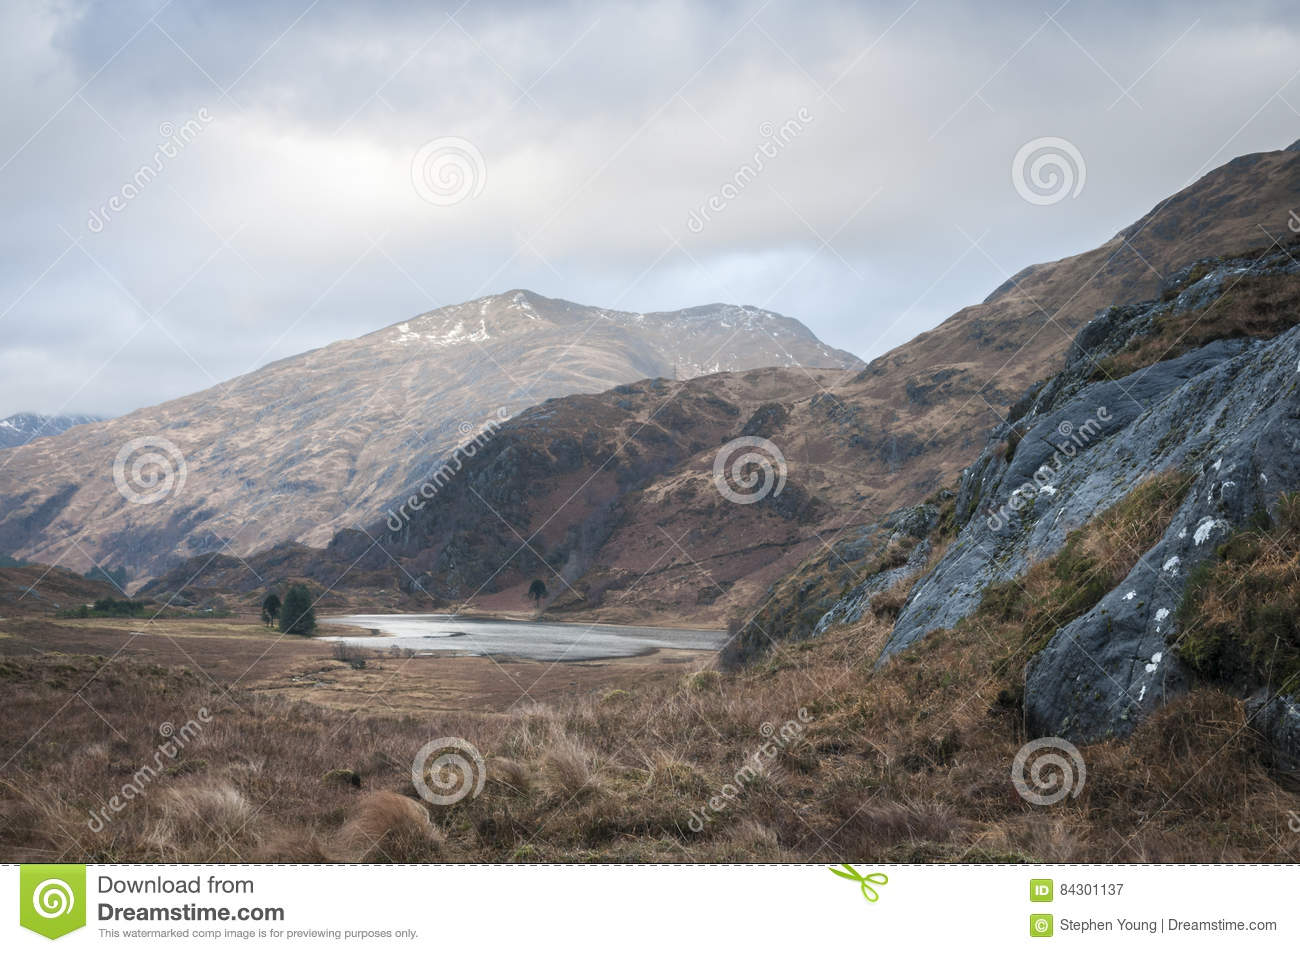 Loch Coire Shubh and the Kinloch Hourn mountains